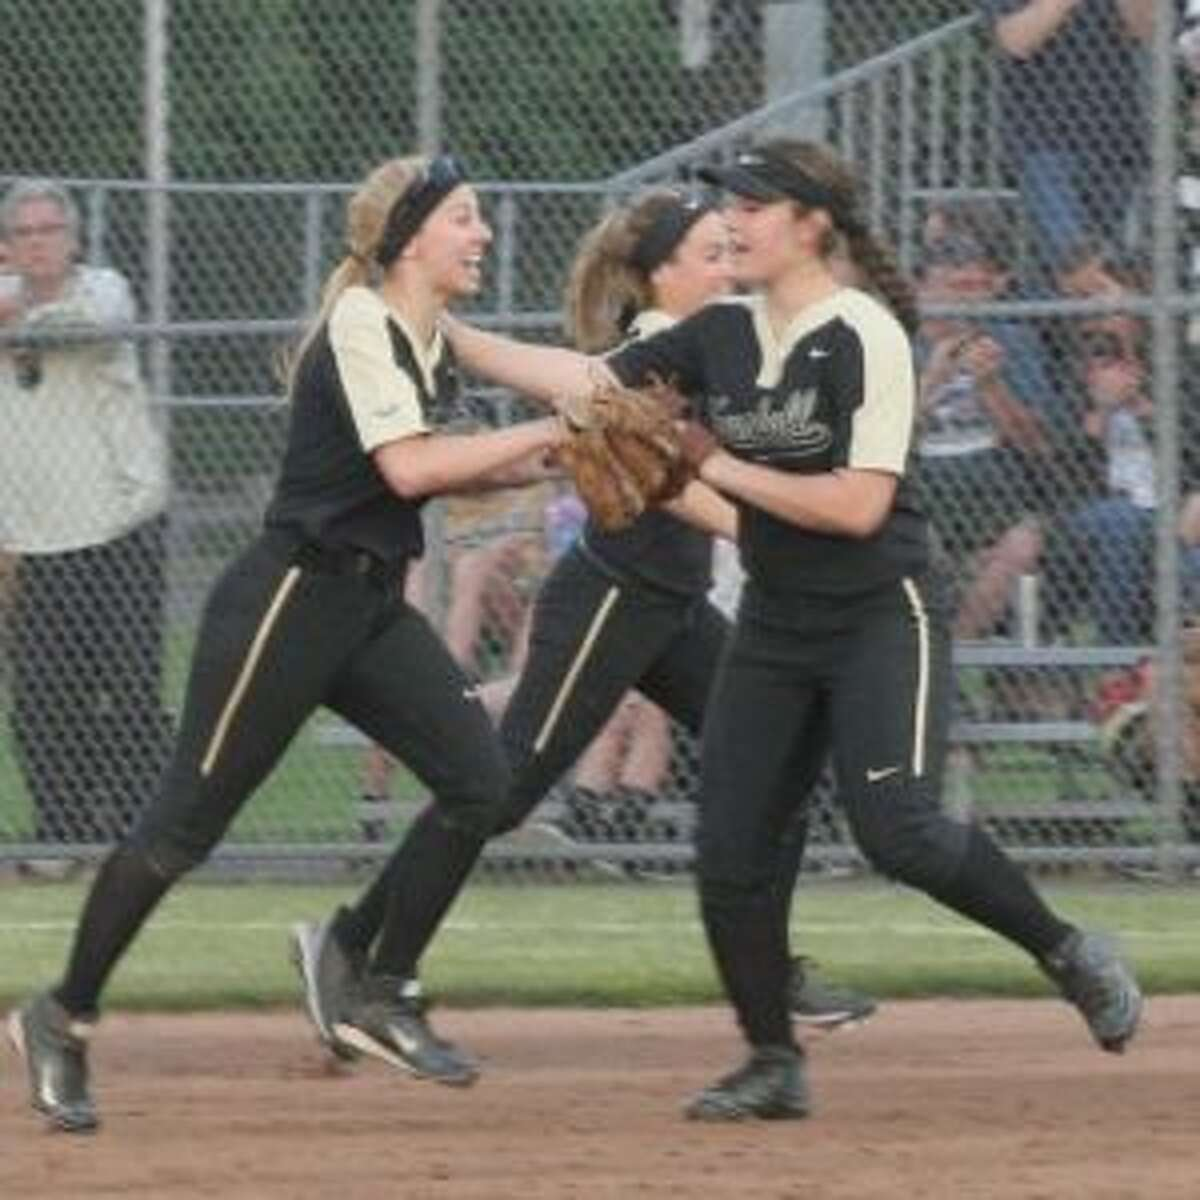 Erica Fluskey is greeted after the rightfielder's catch ended a bases-loaded, no-out jam in the fifth inning.